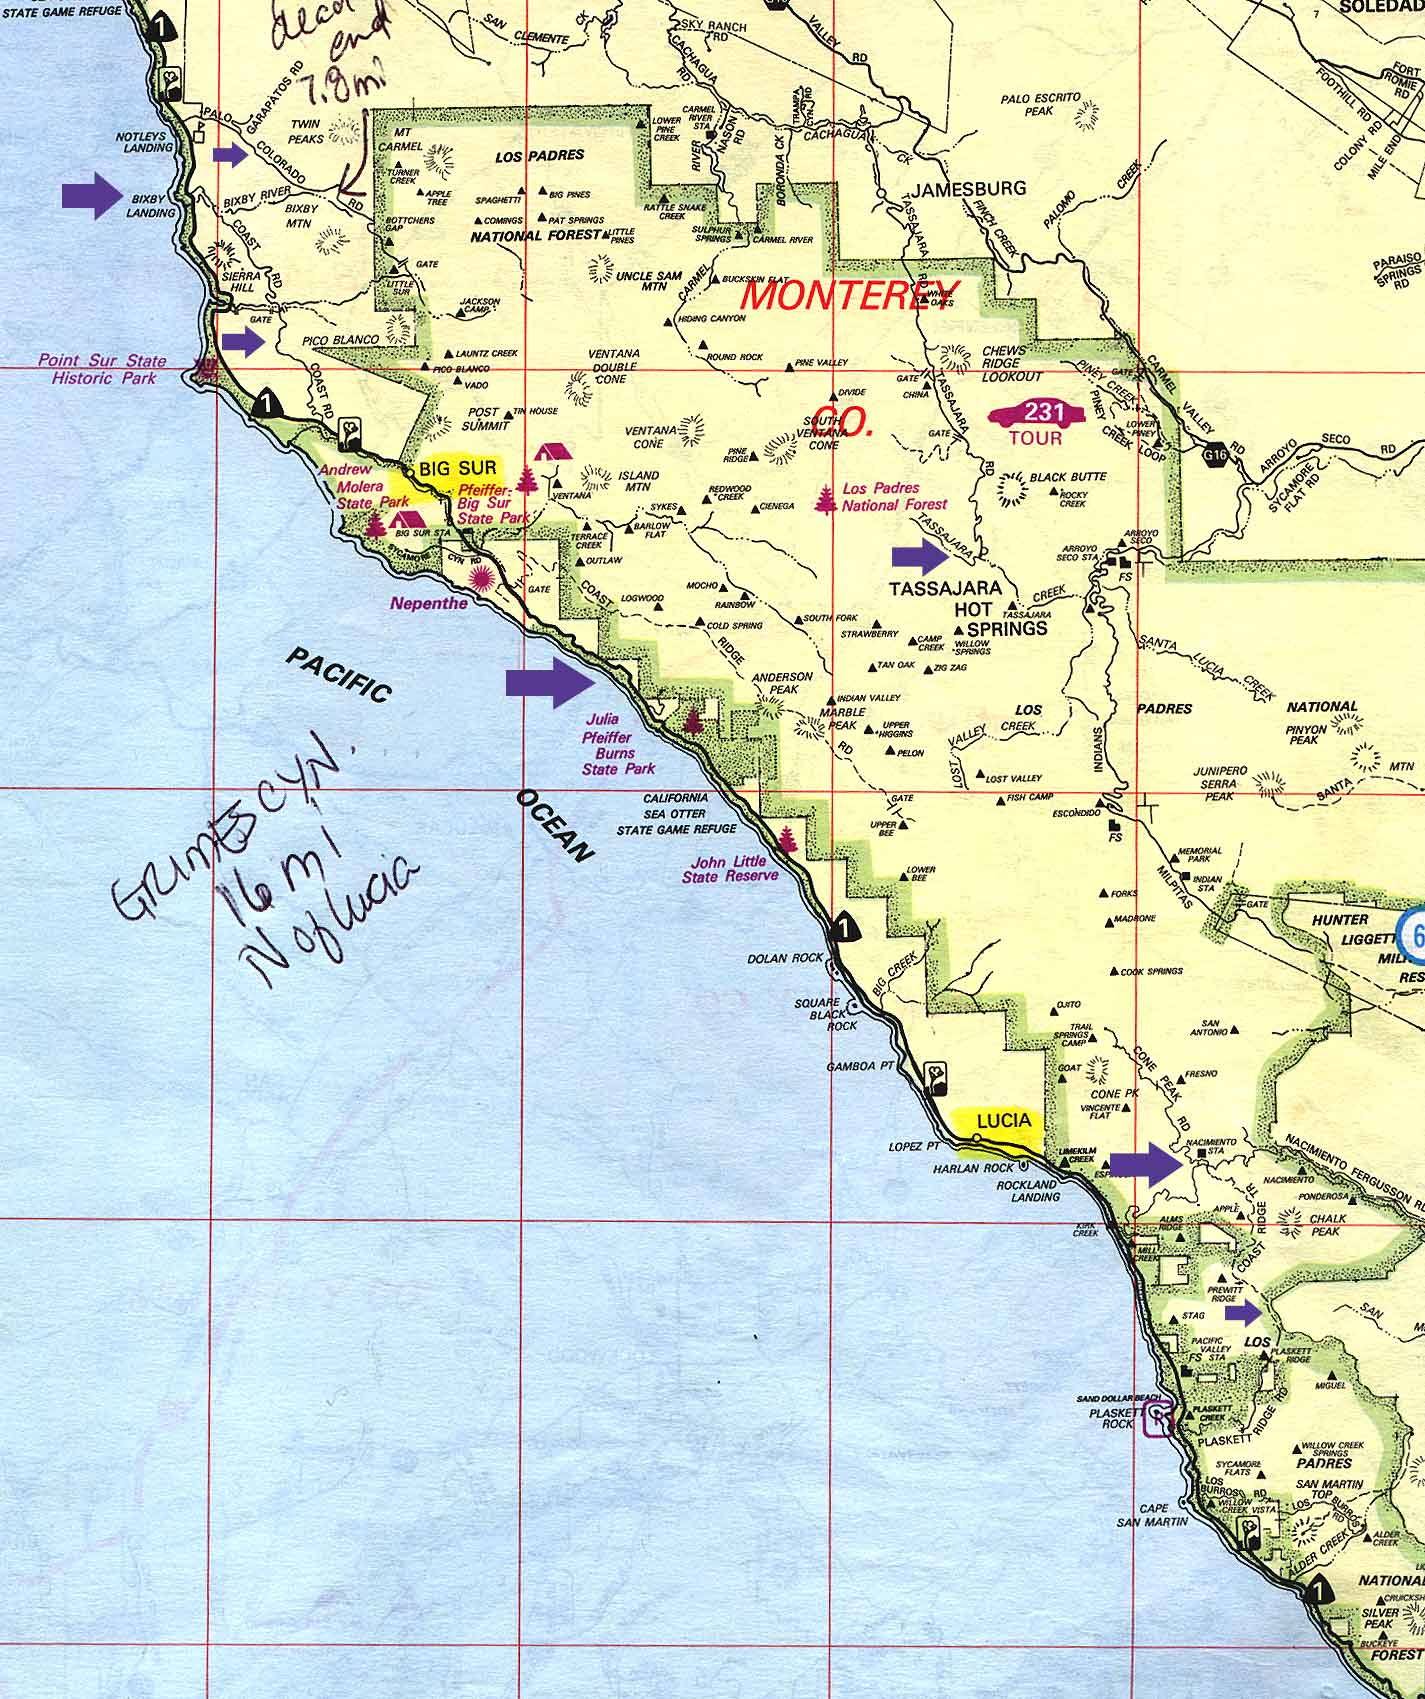 Free Camping Socal Los Padres National Forest Mt Pinos For - Free Camping California Map